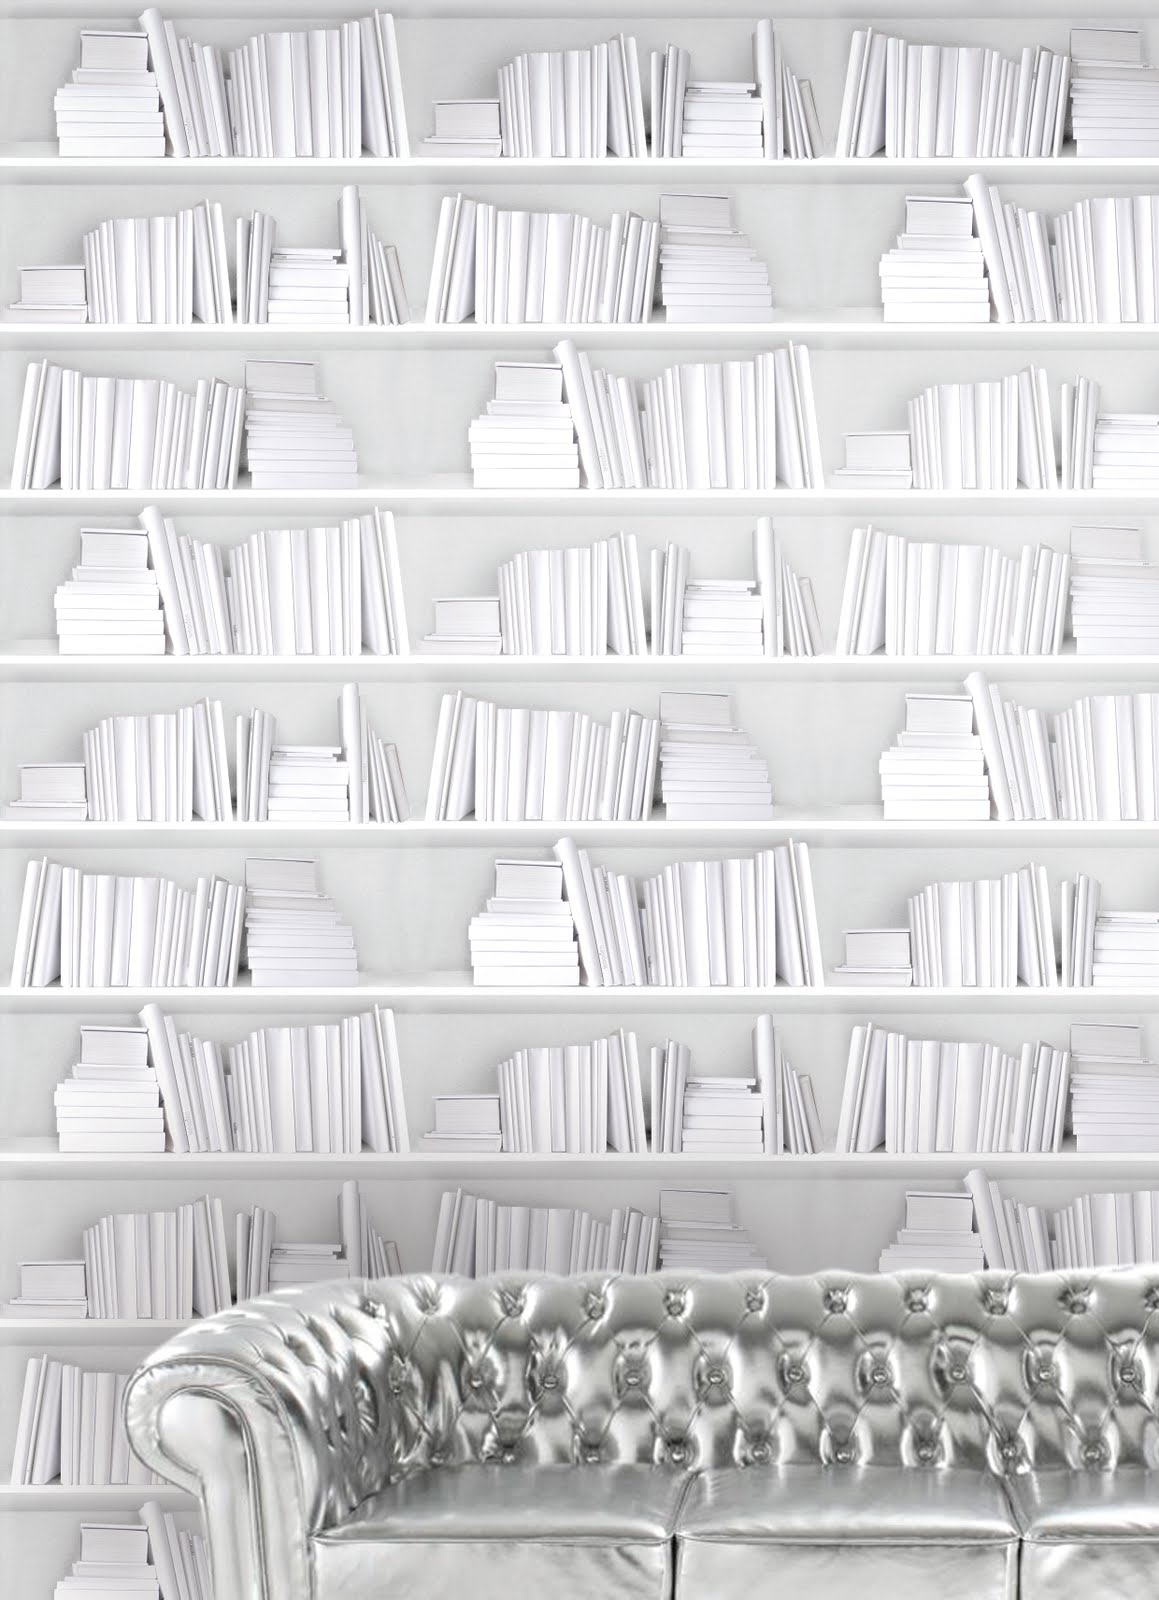 White bookshelf wallpaper by Y & B